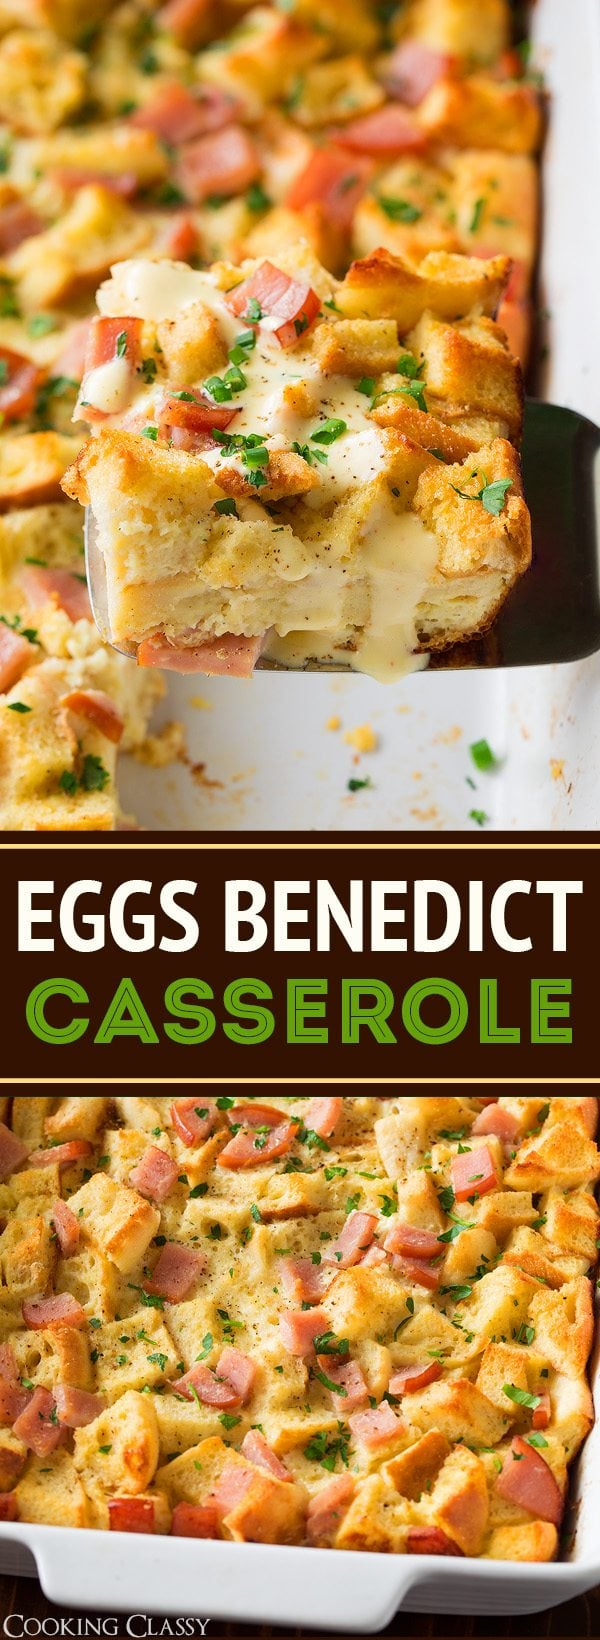 Overnight Eggs Benedict Casserole | Cooking Classy